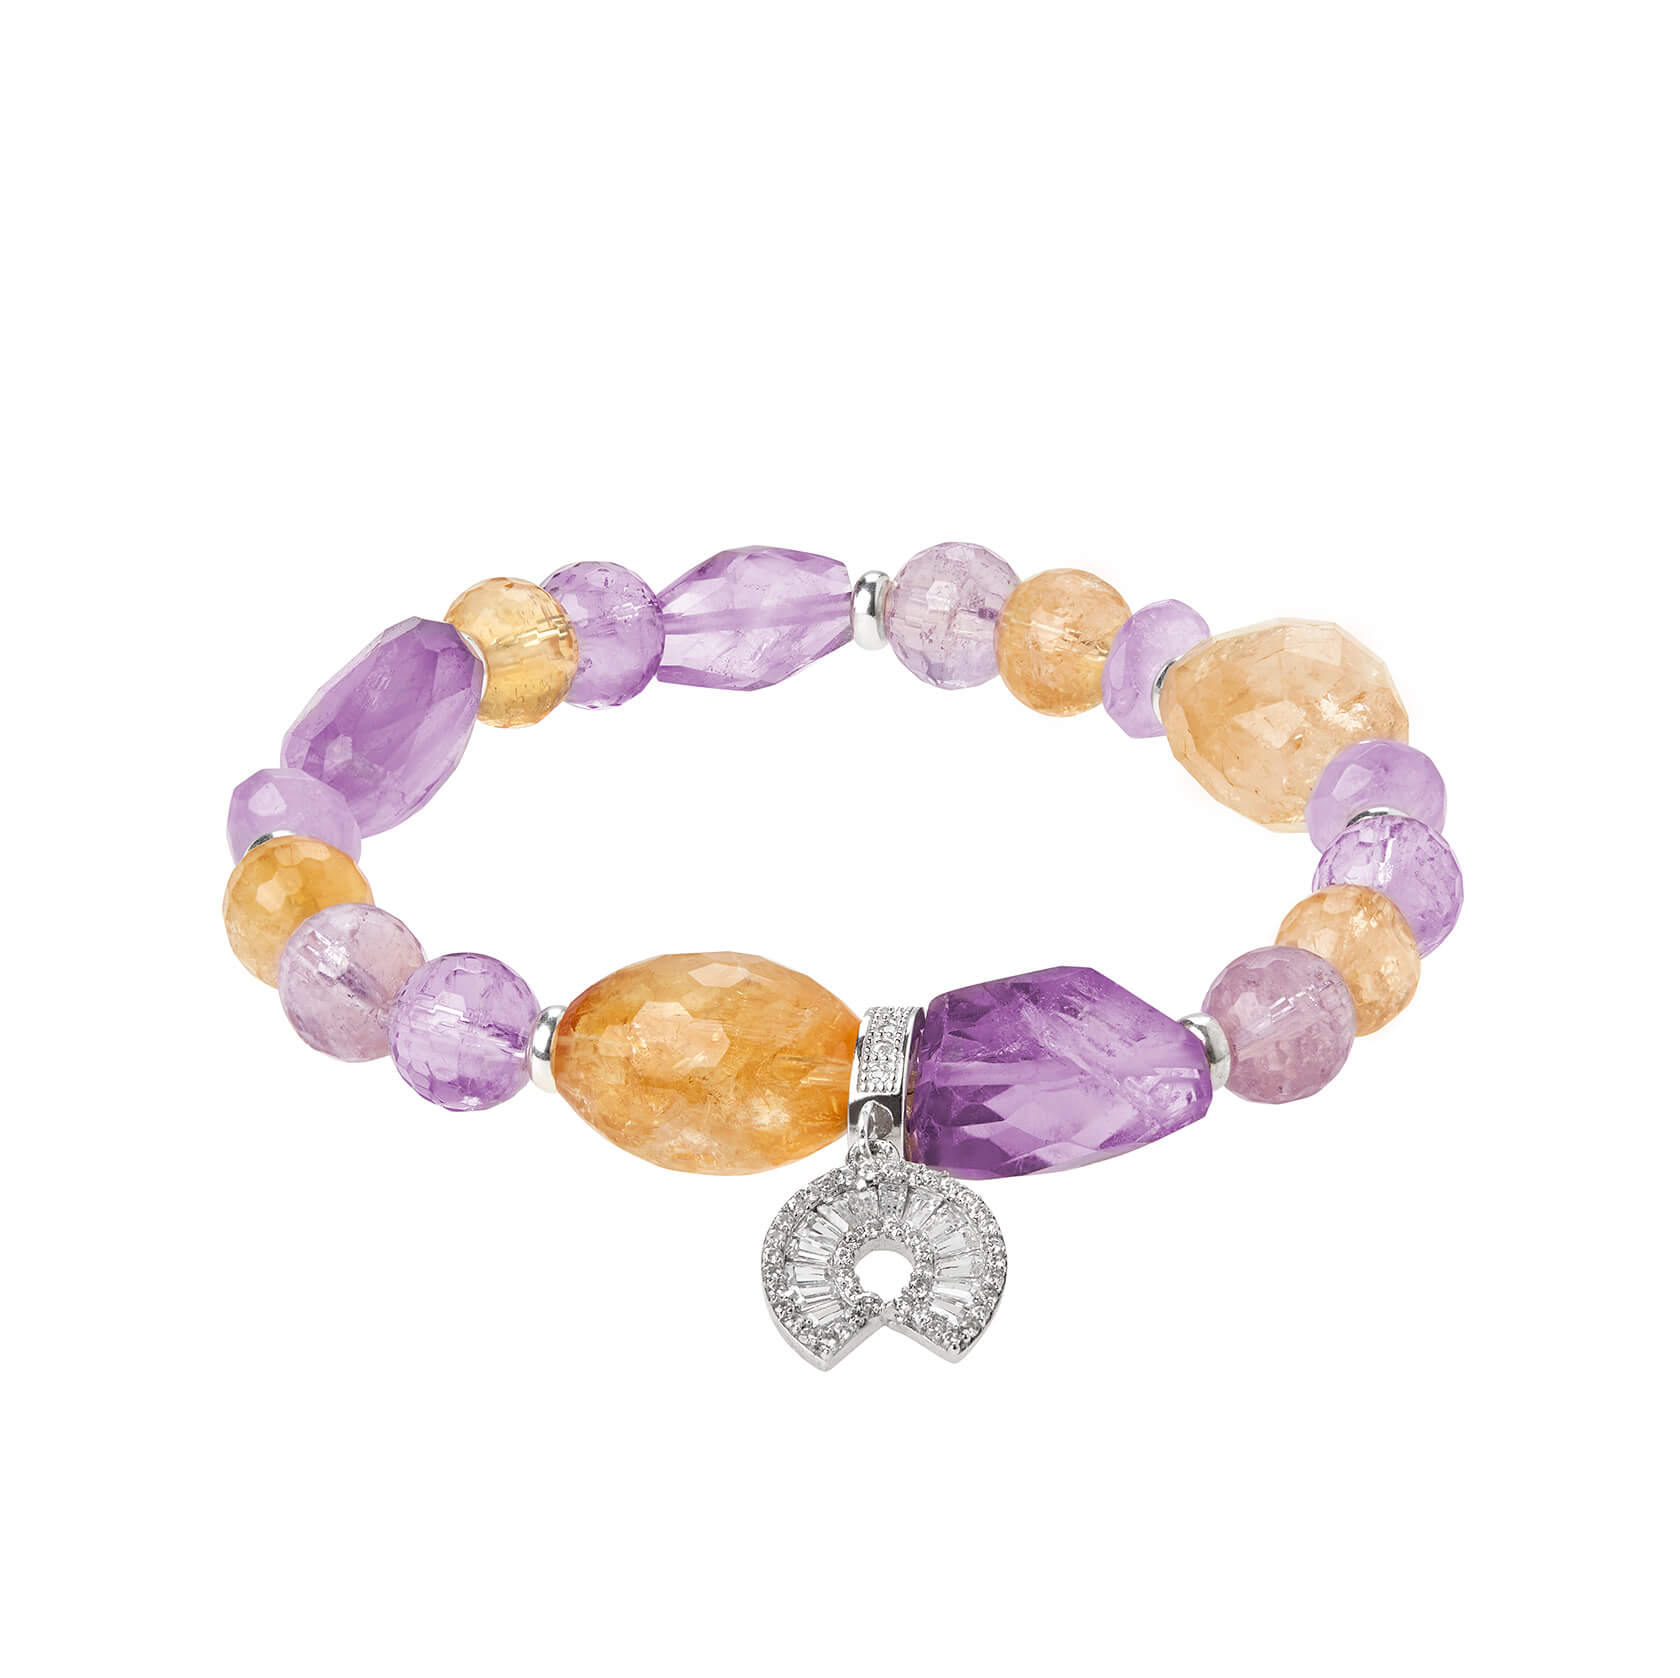 Amethyst and citrine bracelet